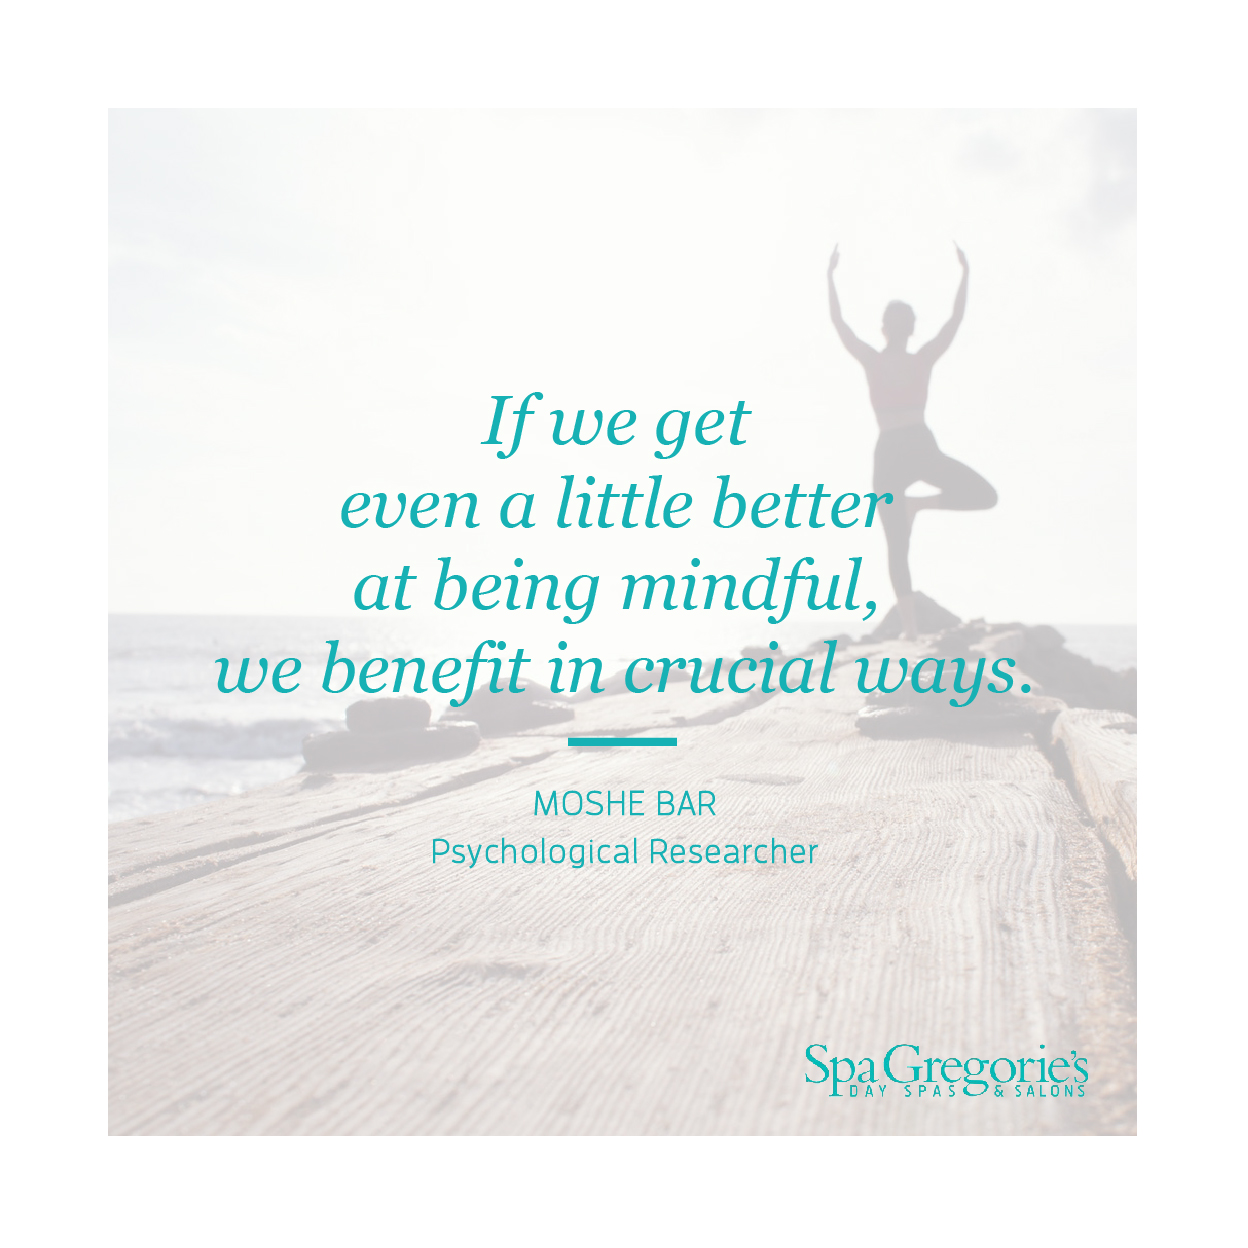 """Picture with woman doing yoga by the beach with text over it that says """"If we get even a little better at being mindful, we benefit in crucial ways,"""" a quote from Moshe Bar, a psychological researcher."""